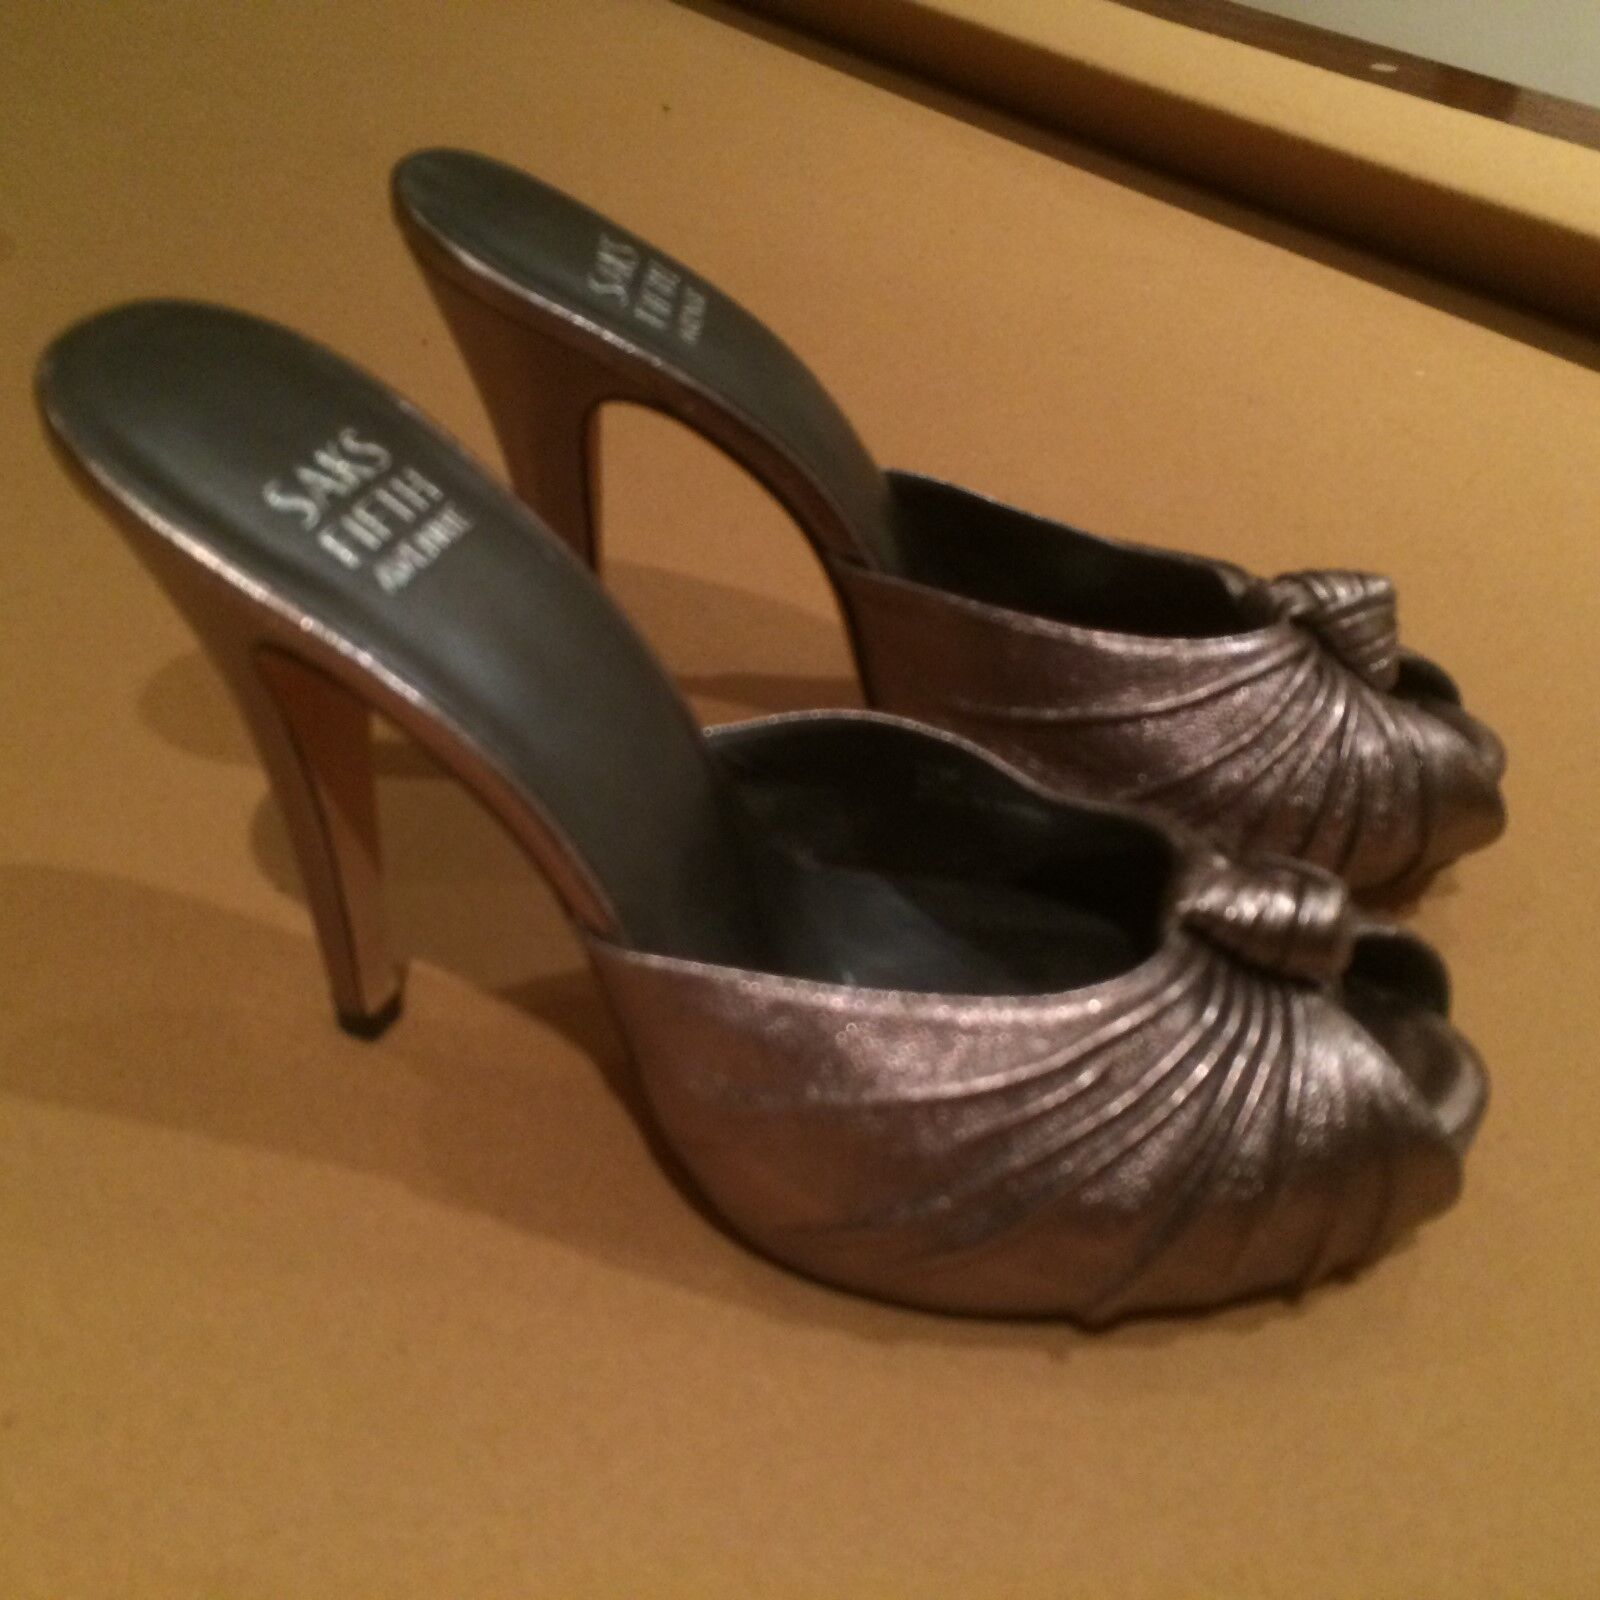 negozio online NEW SAKS FIFTH AVENUE PEWTER SHOE, HEEL, HEEL, HEEL, MULE Dimensione 7 1 2  vendita online